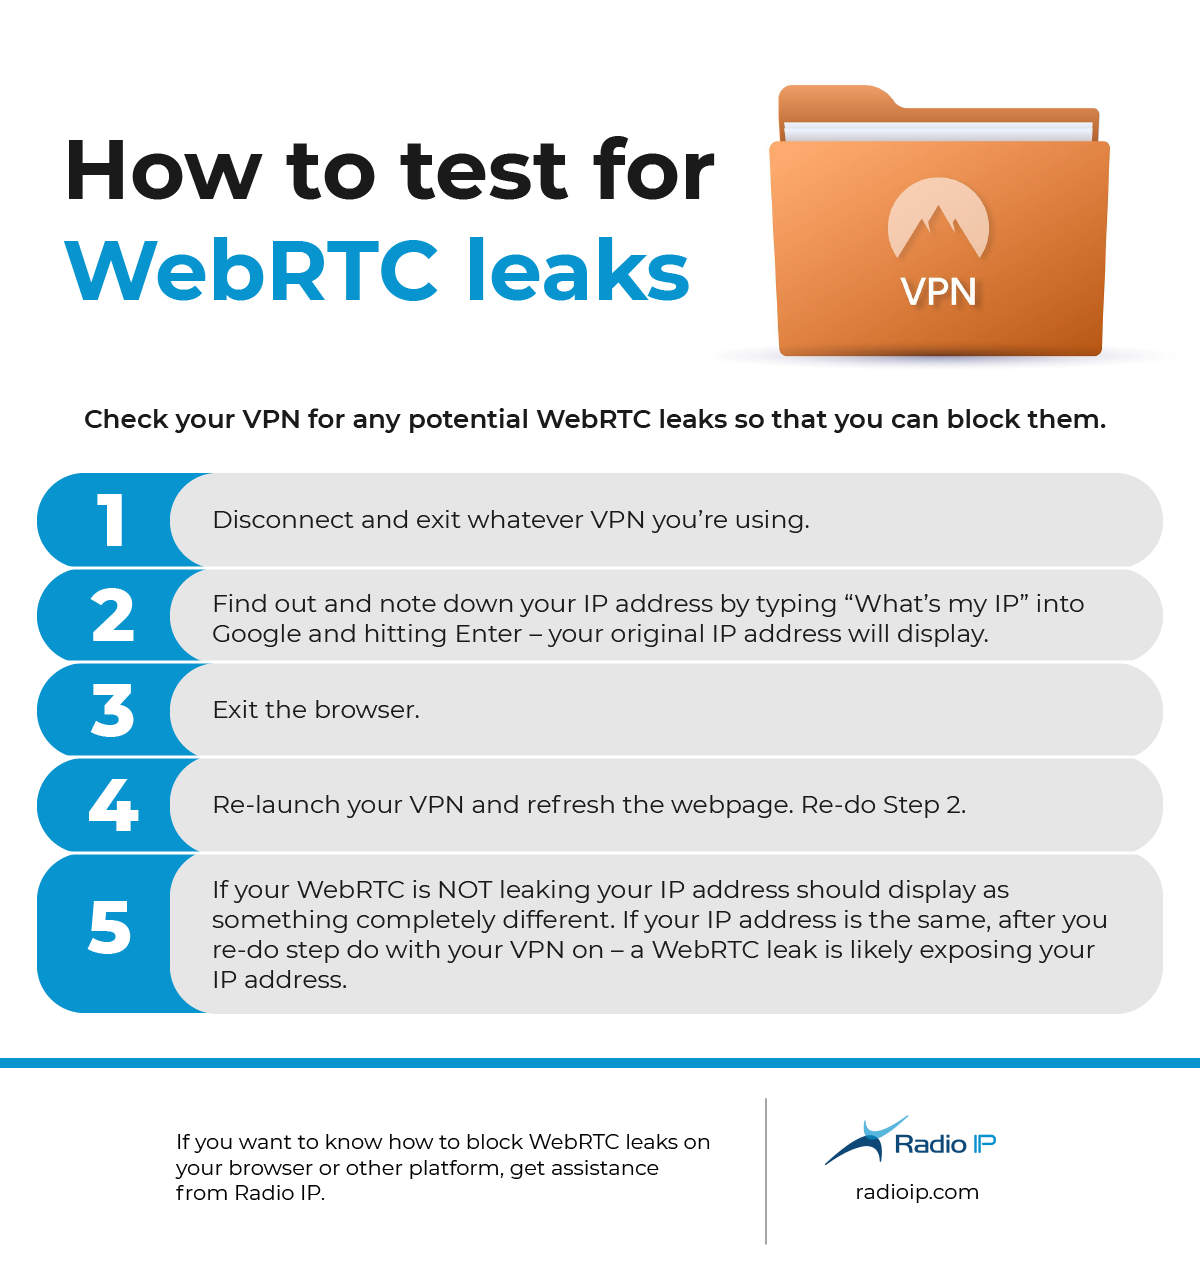 How to Test for WebRTC Leaks